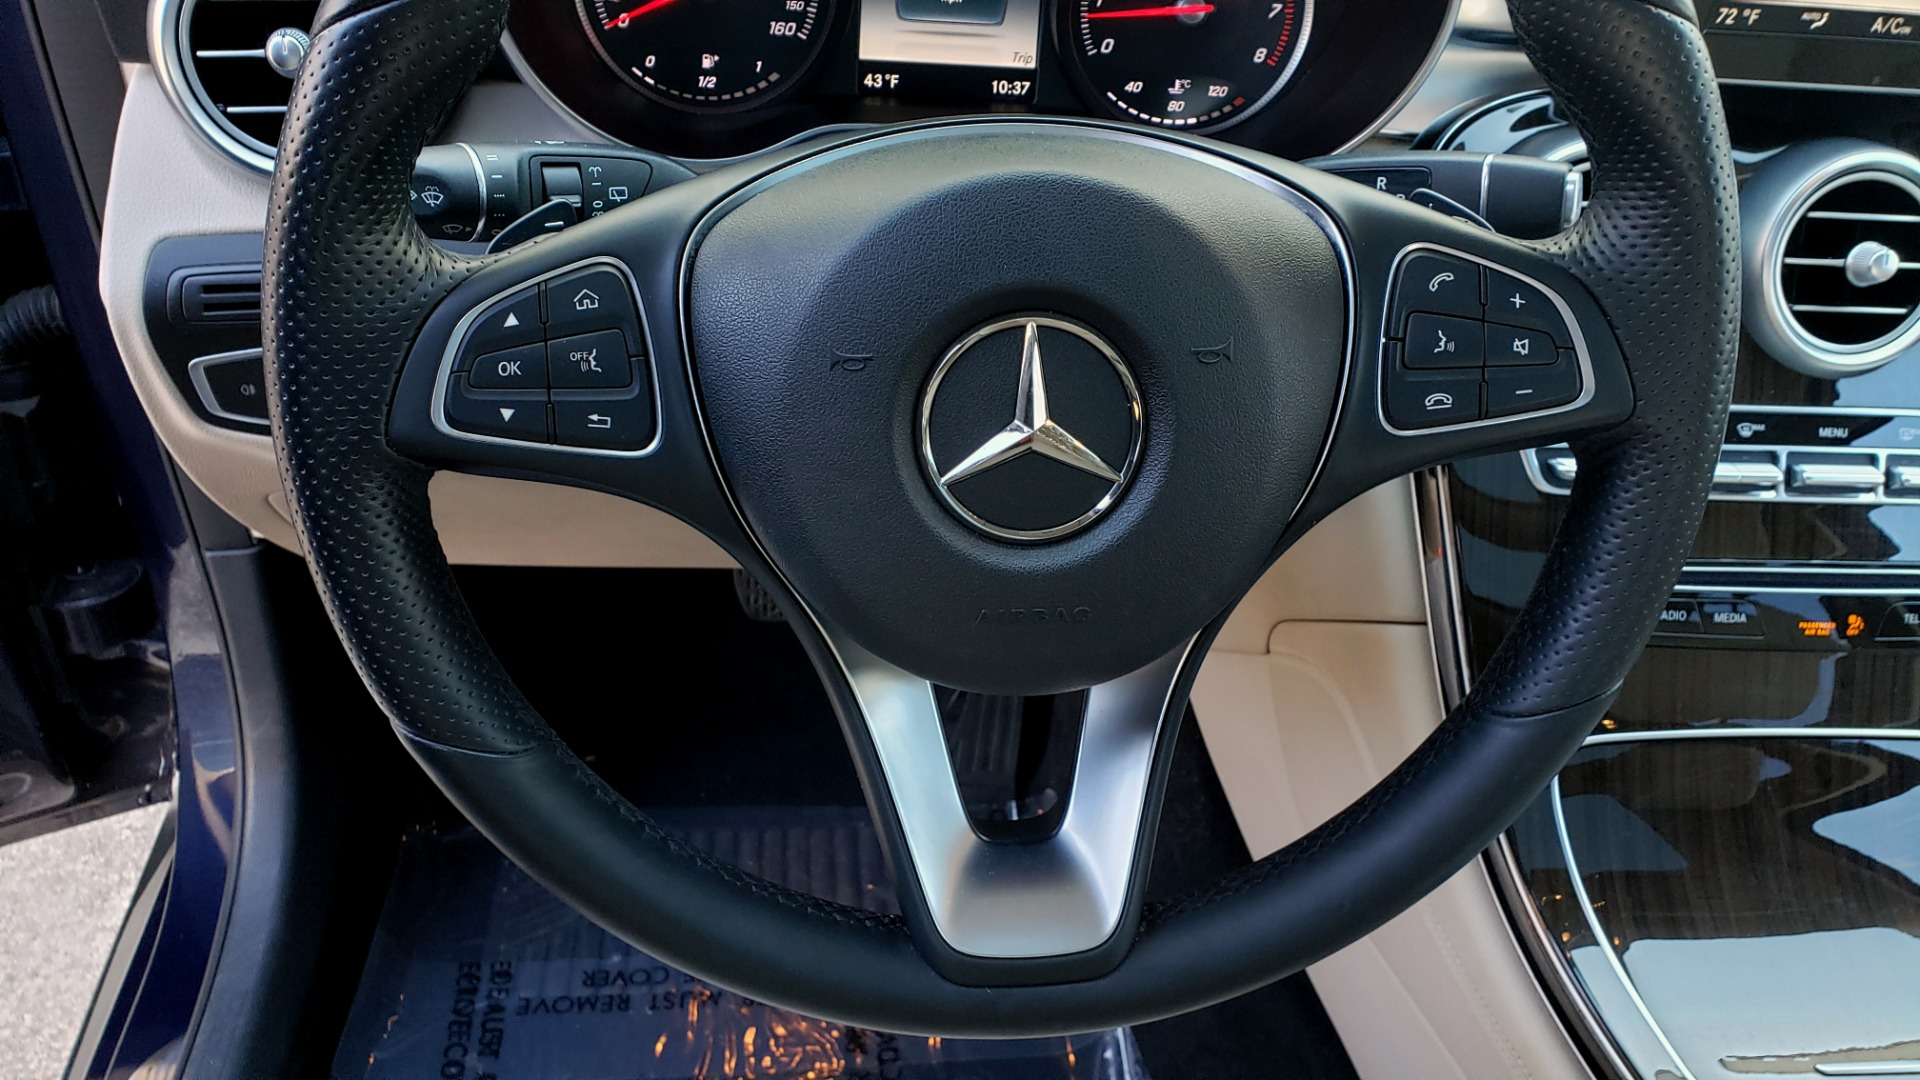 Used 2017 Mercedes-Benz GLC 300 4MATIC / PREM / NAV / KEYLESS-GO / SUNROOF / REARVIEW for sale Sold at Formula Imports in Charlotte NC 28227 37